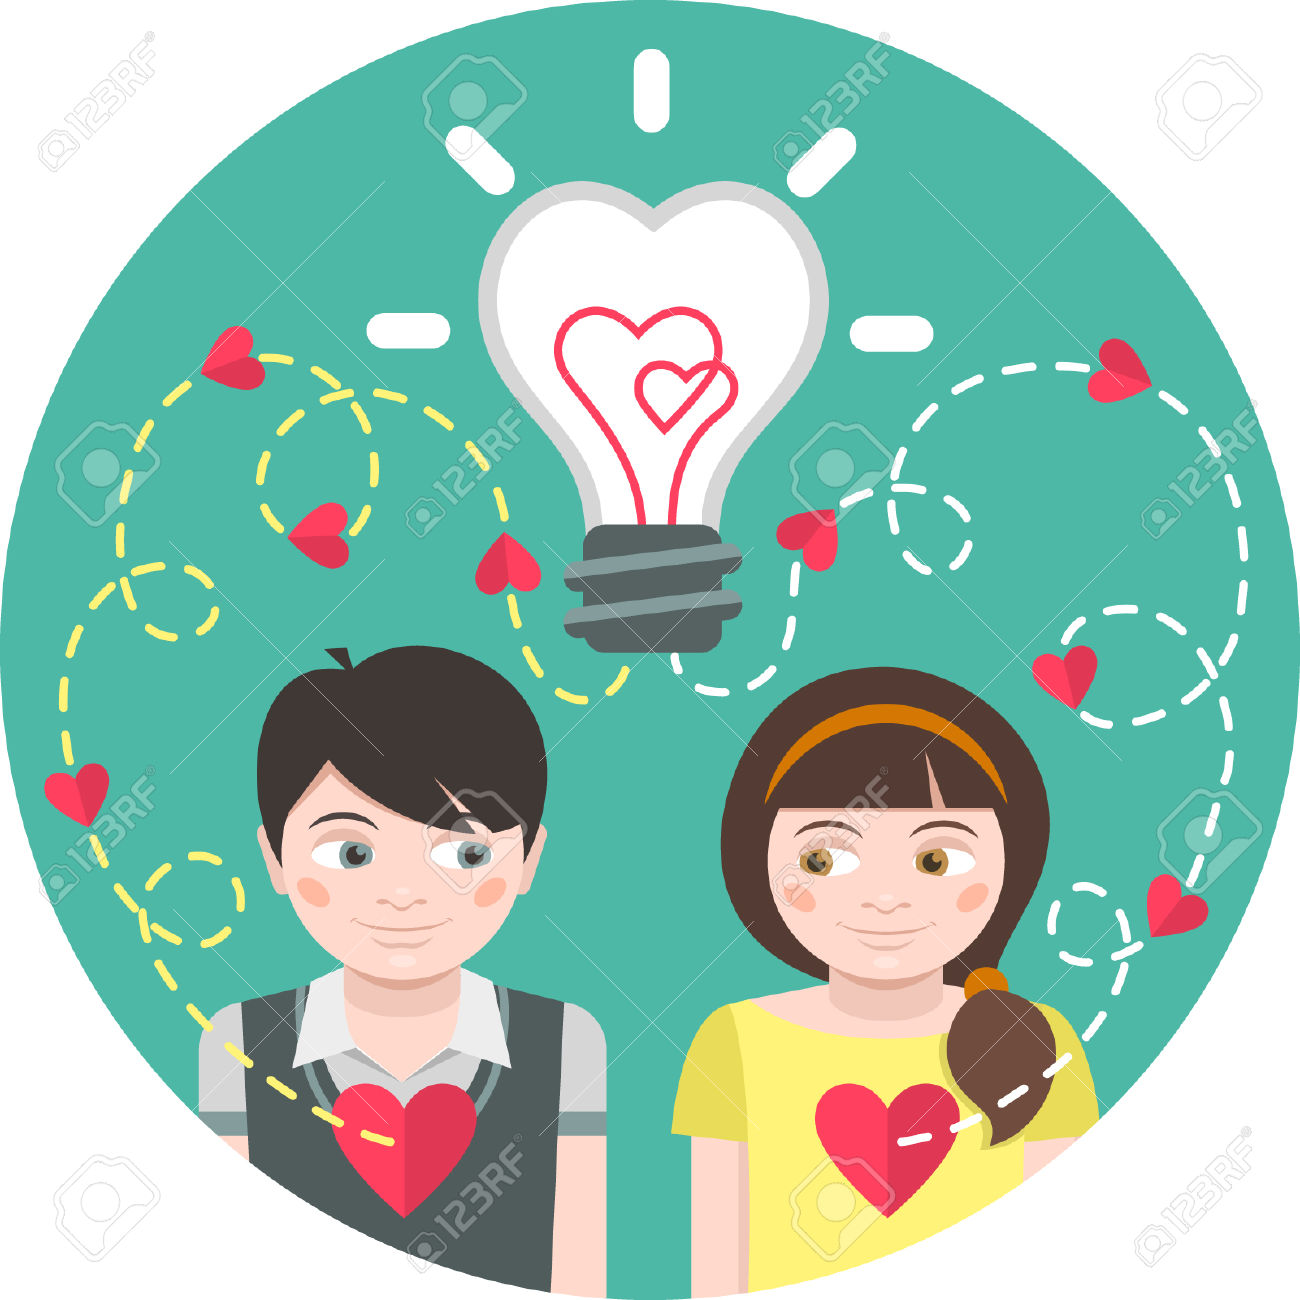 Round Illustration Of Love At First Sight With A Light Bulb And.